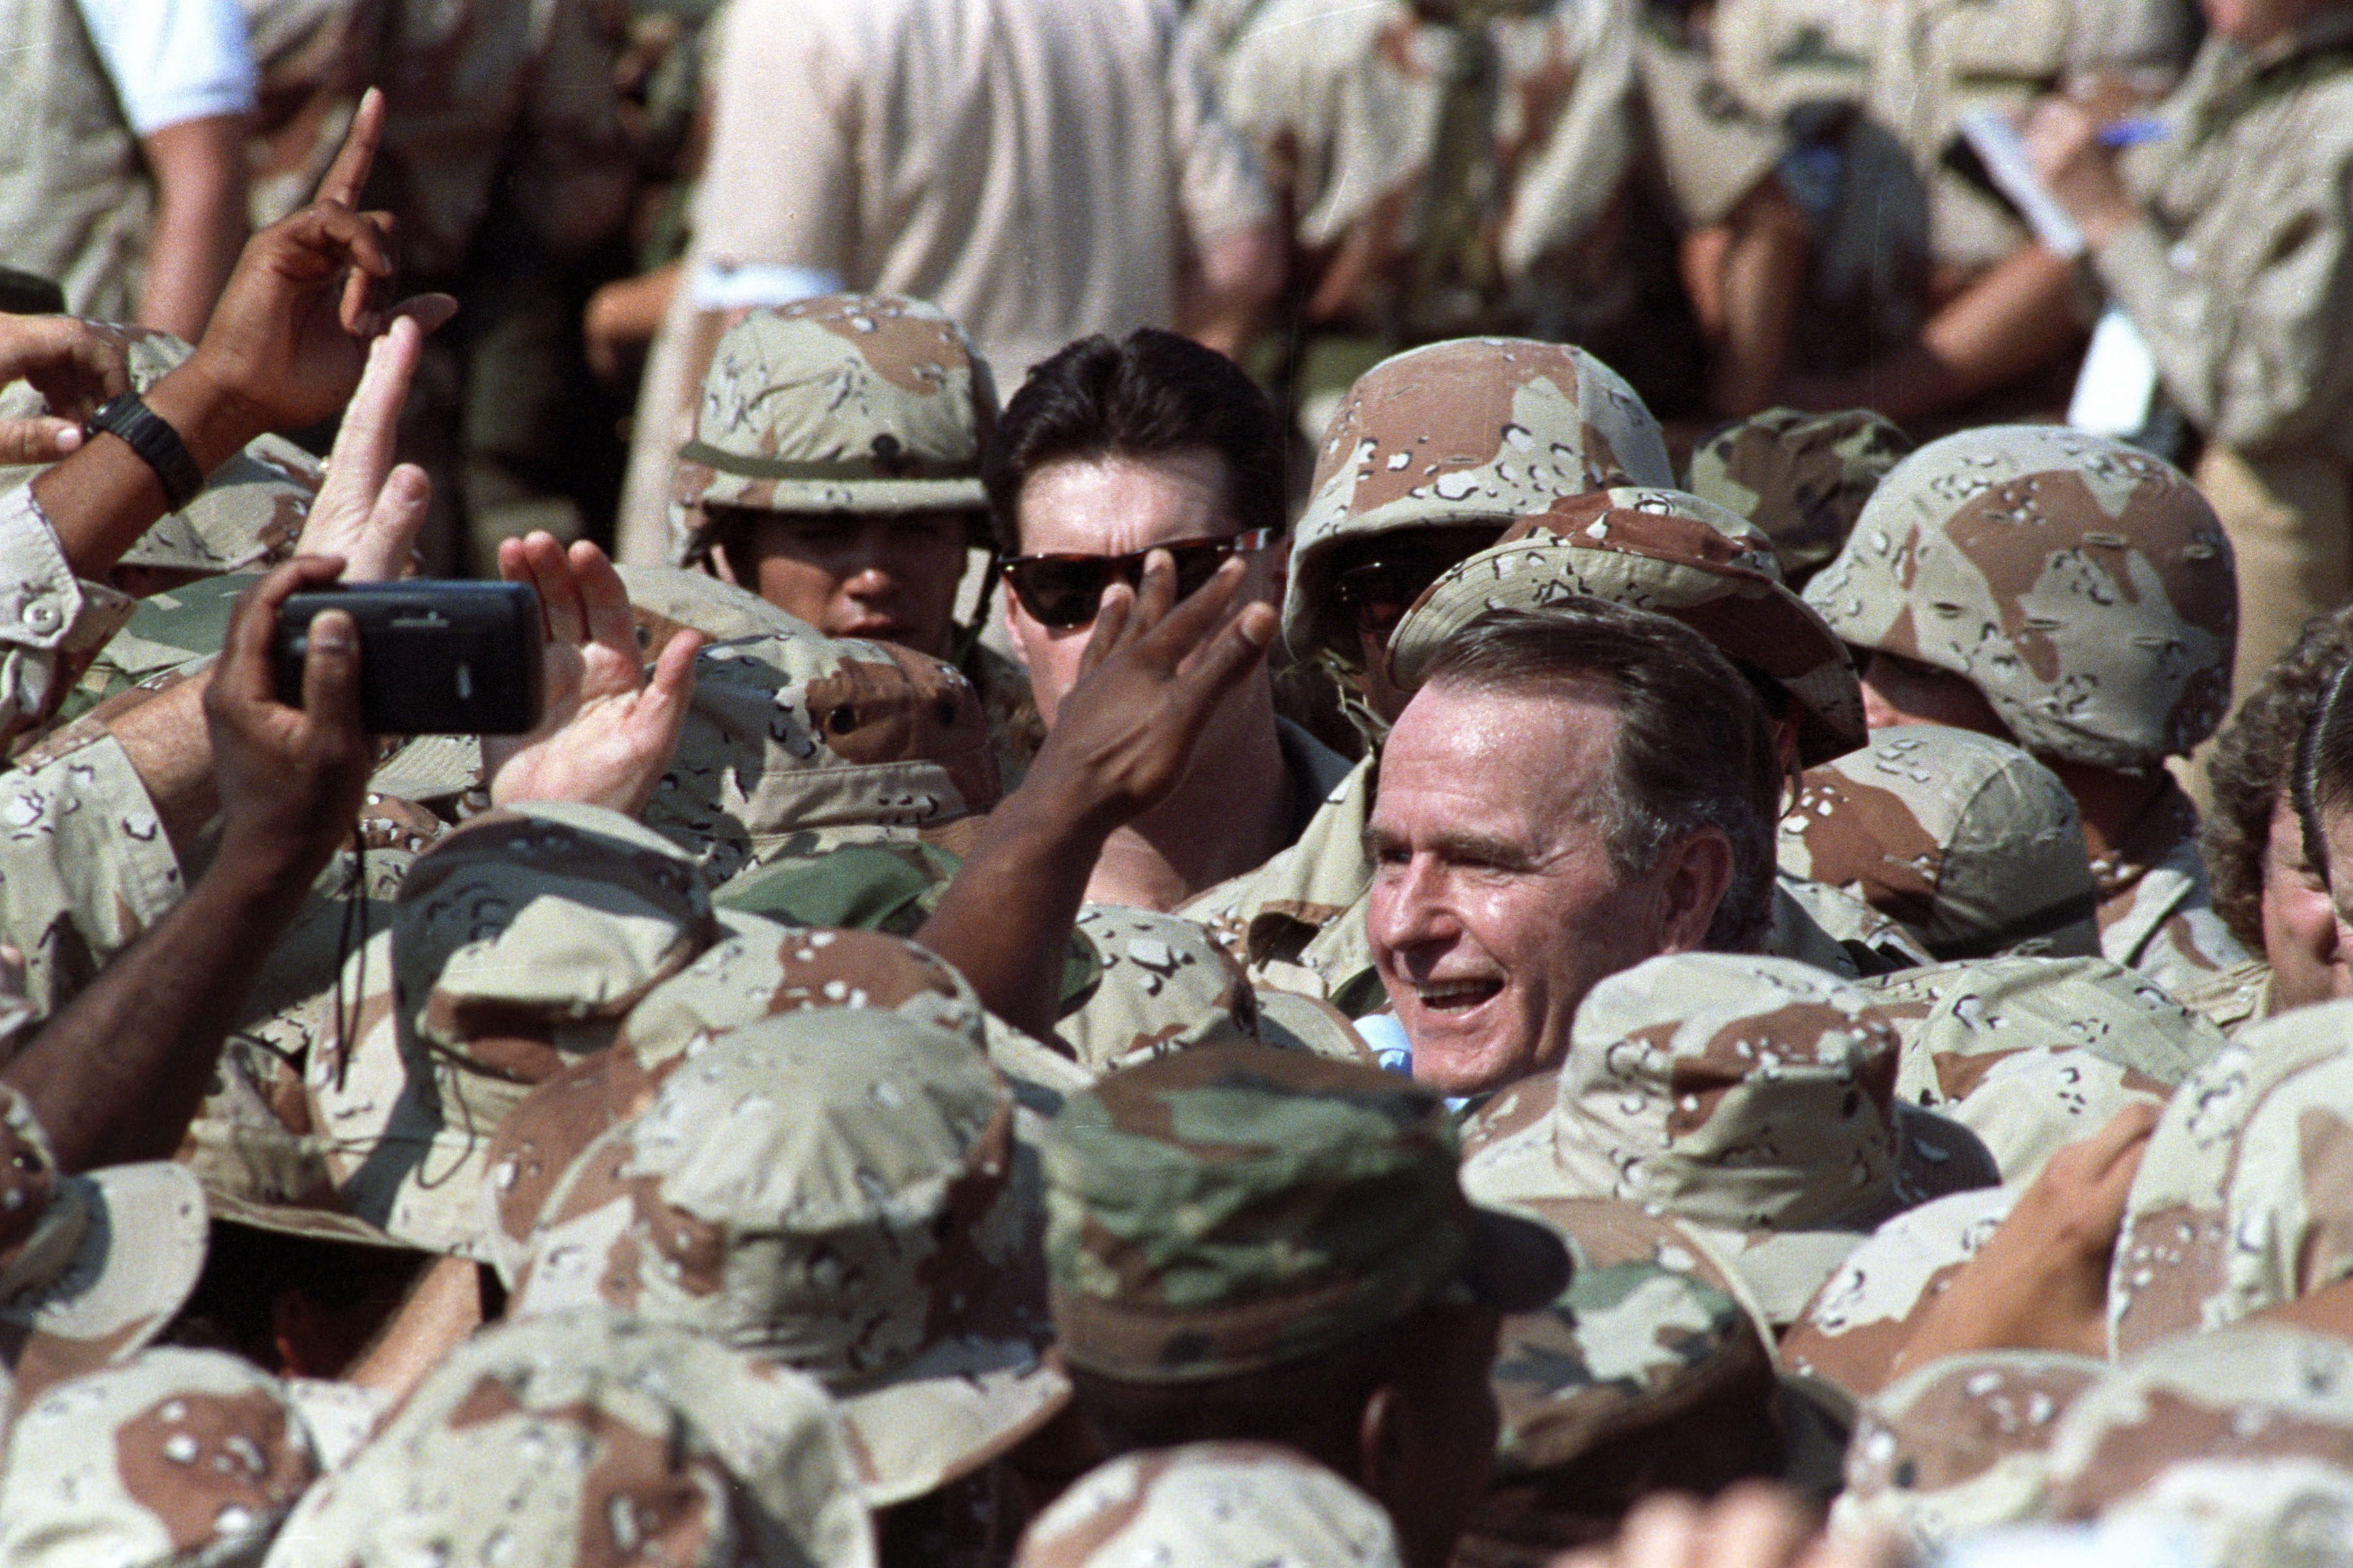 President George H.W. Bush is surrounded by a sea of U.S. military personnel as he greets troops following an arrival ceremony in the eastern Saudi Arabian city of Dhahran November 22, 1990. Bush celebrates Thanksgiving Day with U.S. troops from all branches of the military deployed here after the Iraqi invasion of Kuwait.   Reuters/Terry Bochatey ( SAUDI ARABIA - Tags: POLITICS CIVIL UNREST) BEST QUALITY AVAILABLE